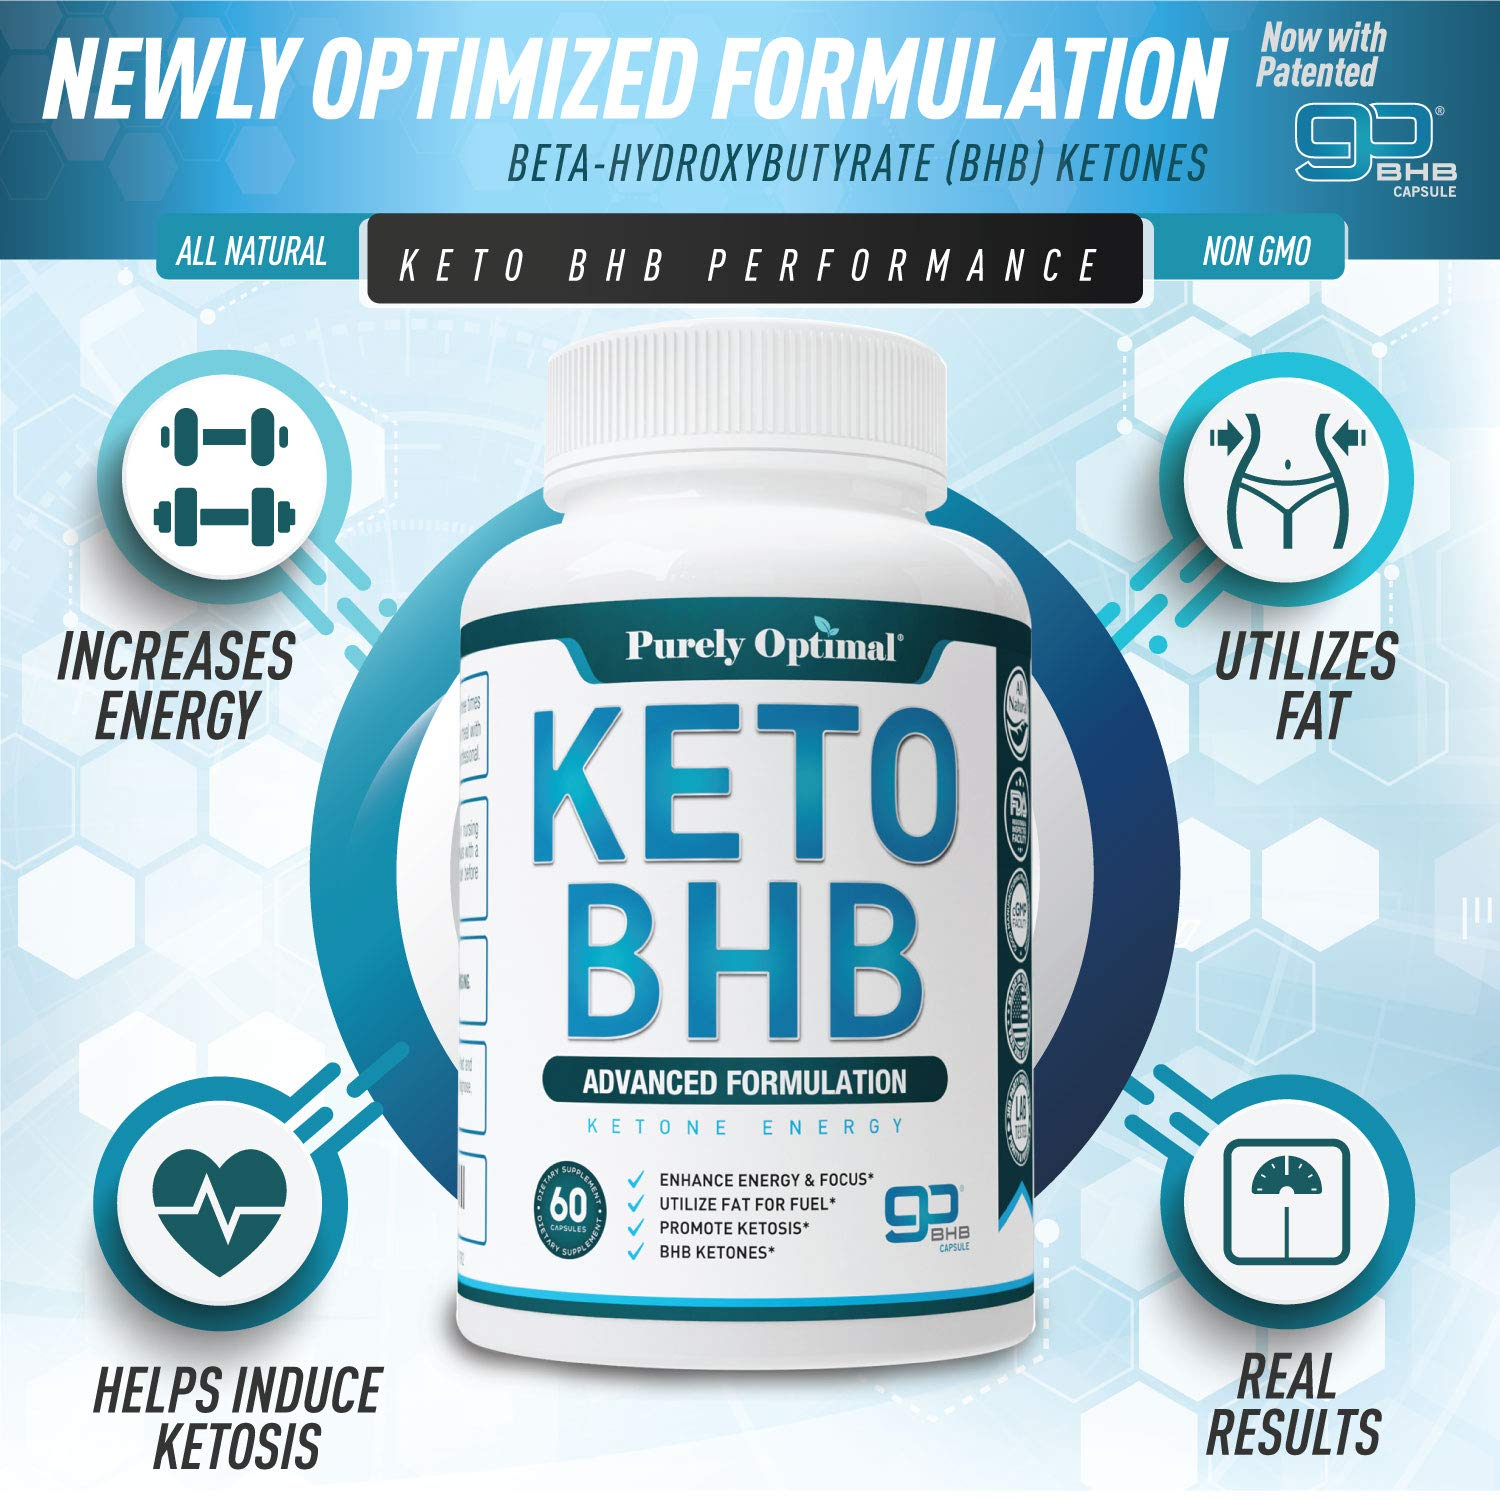 Premium Keto Diet Pills - Utilize Fat for Energy with Ketosis - Boost Energy & Focus, Manage Cravings, Support Metabolism - Keto BHB Supplement for Women and Men - 30 Day Supply by PURELY OPTIMAL (Image #5)